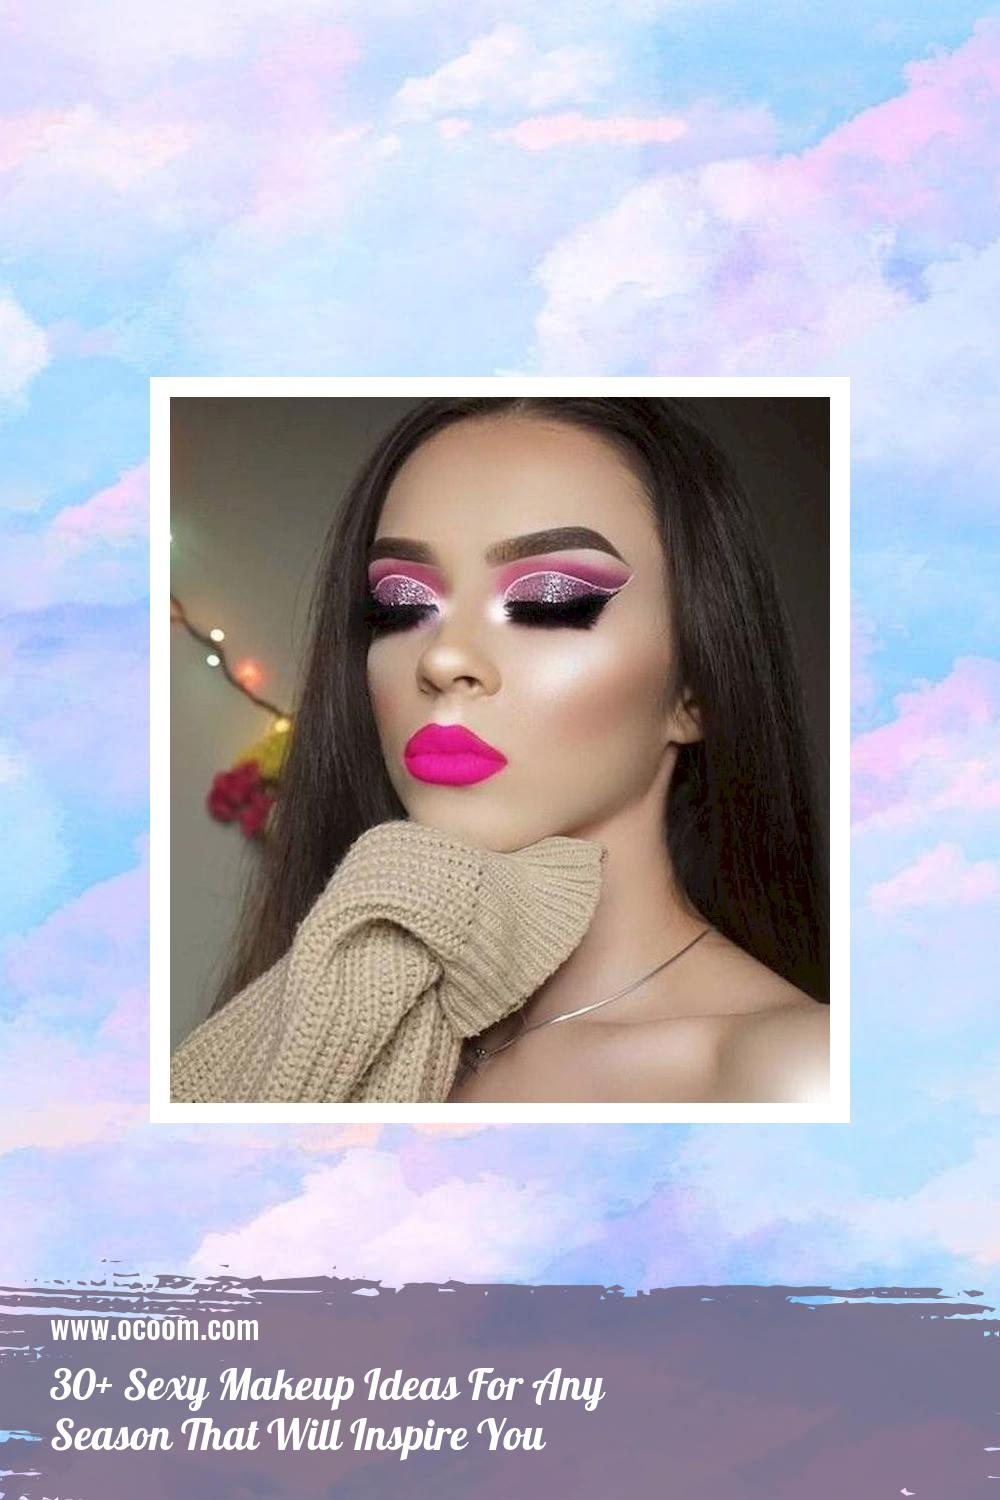 30+ Sexy Makeup Ideas For Any Season That Will Inspire You 16